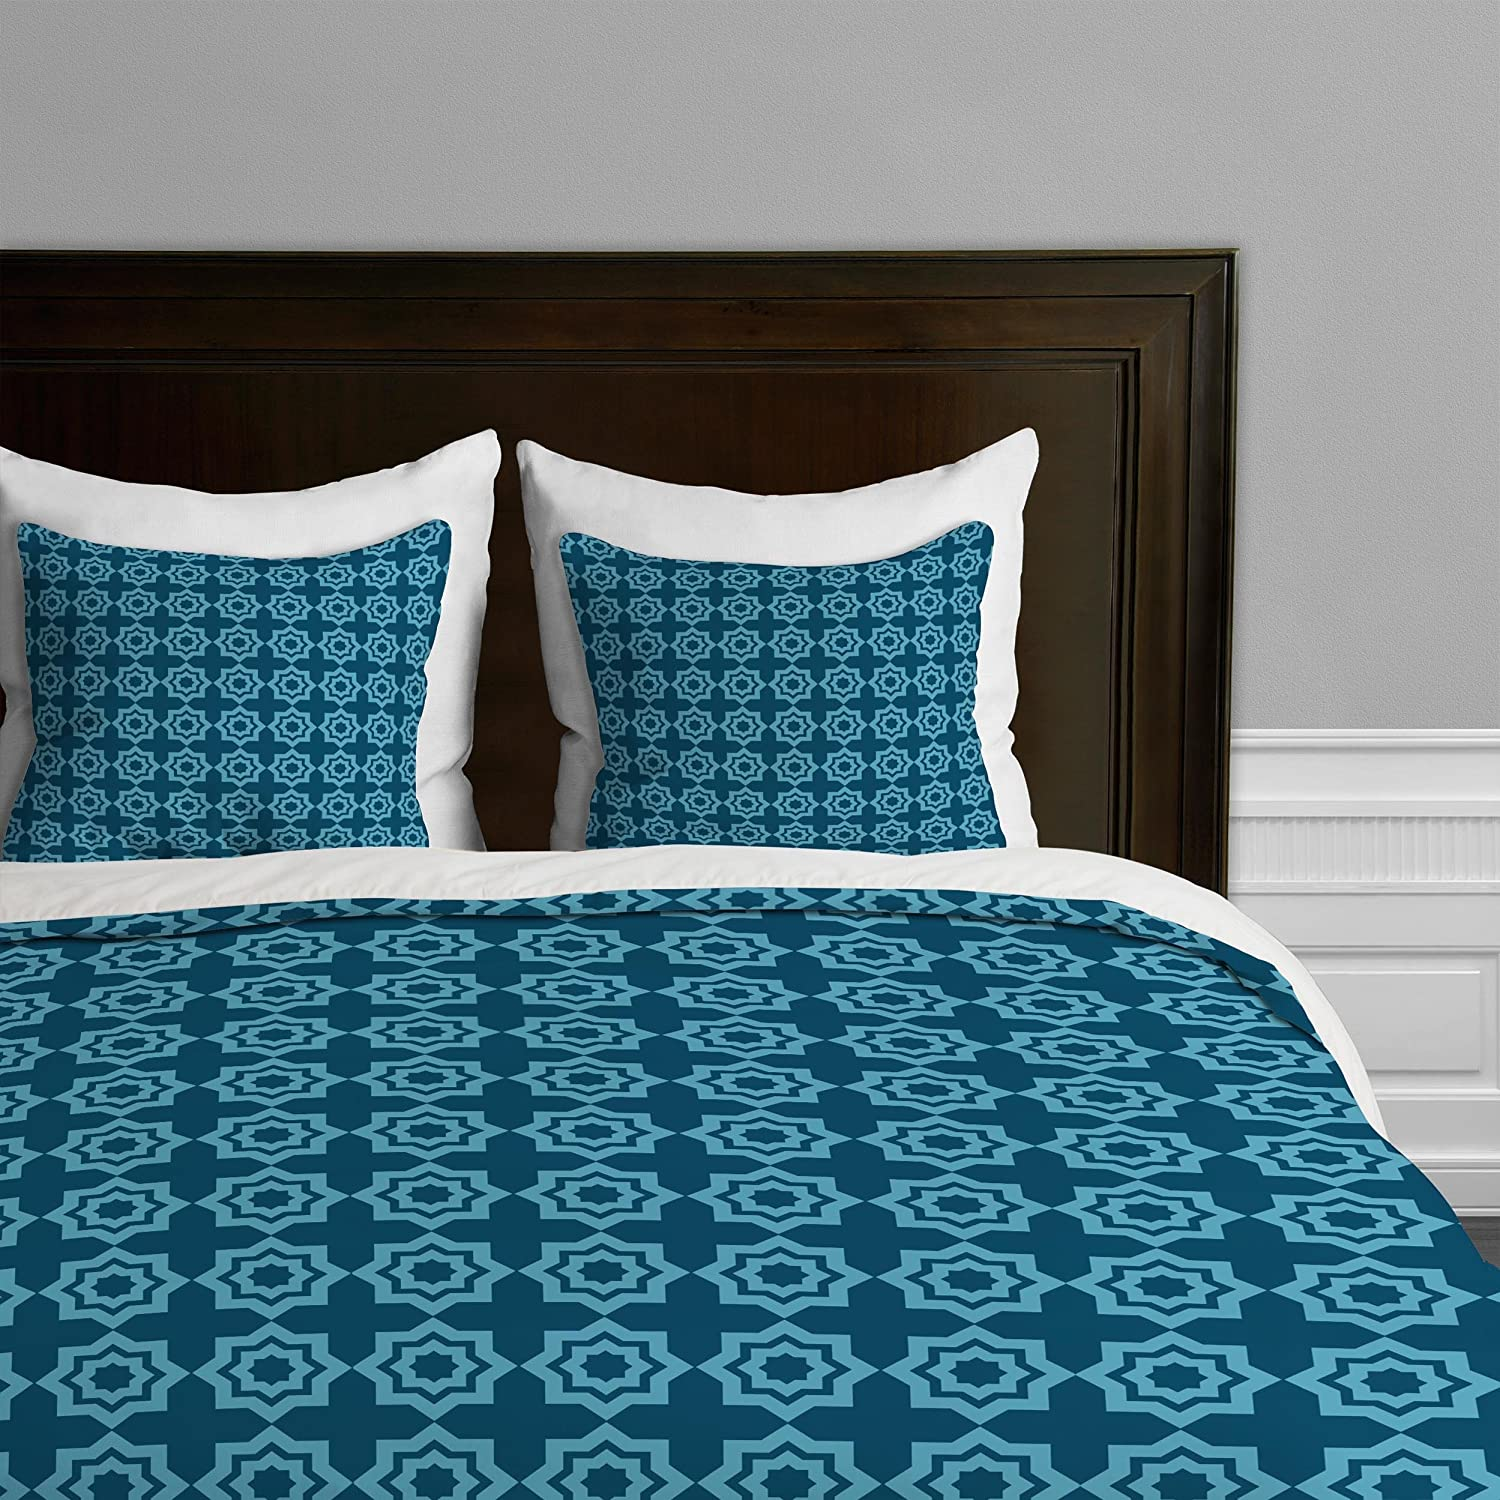 Mgoldccan Mirage bluee King Deny Designs  Khristian A Howell Bryant Park 6 Duvet Cover, Queen